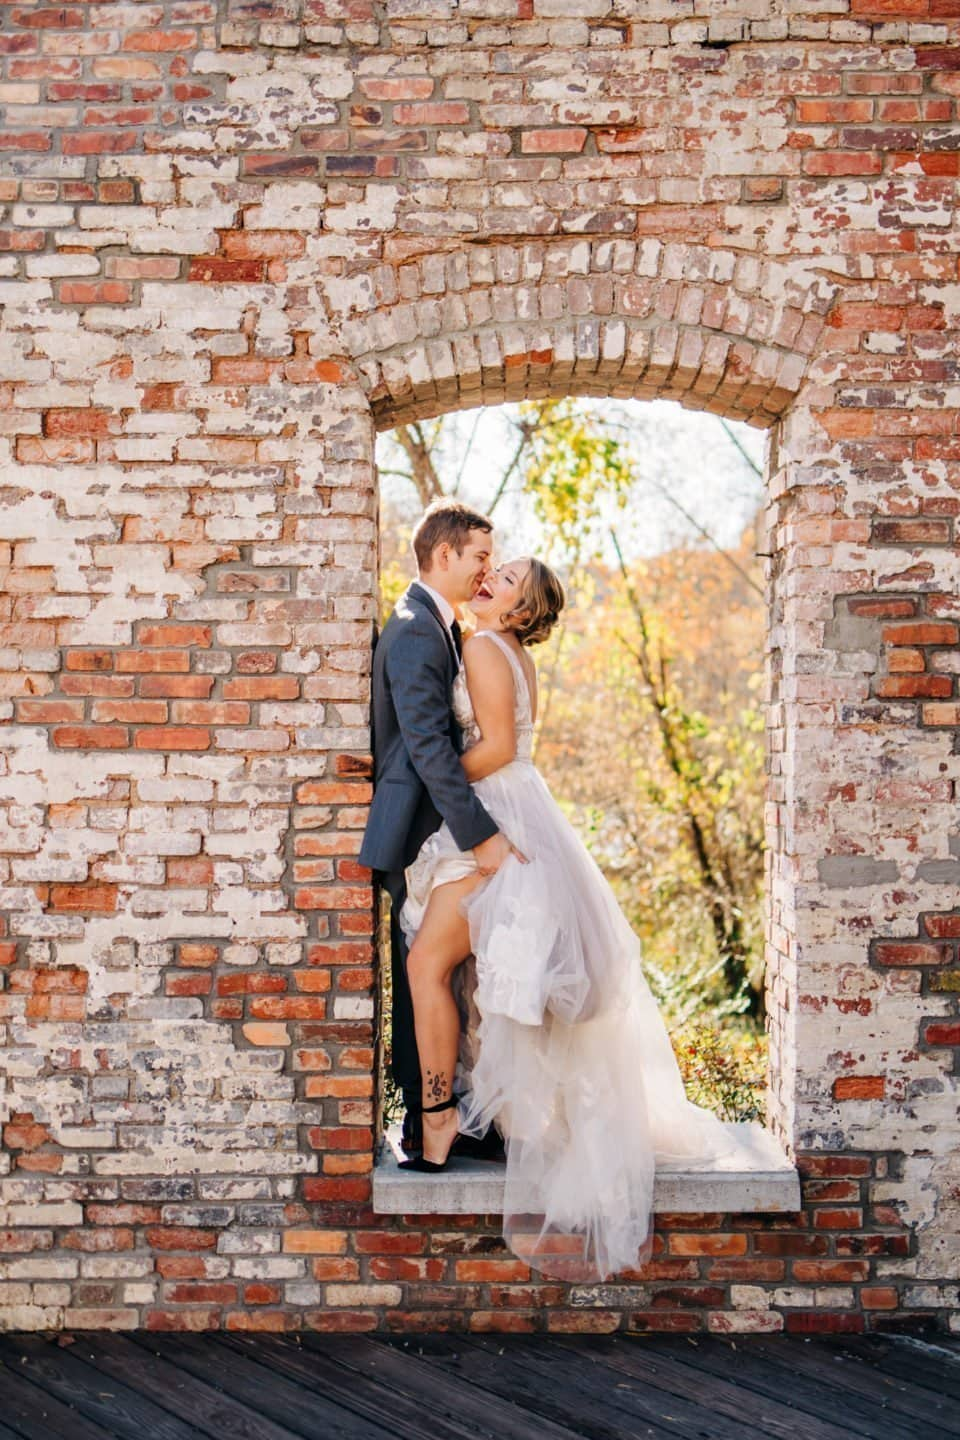 Knoxville Wedding Photographer, Derek Halkett Photography is based in Knoxville and works throughout east Tennessee. Derek is a licensed Smoky Mountain Photographer and specializes in Engagement and Wedding Photography. Contact him to book your Wedding or Engagement session today!